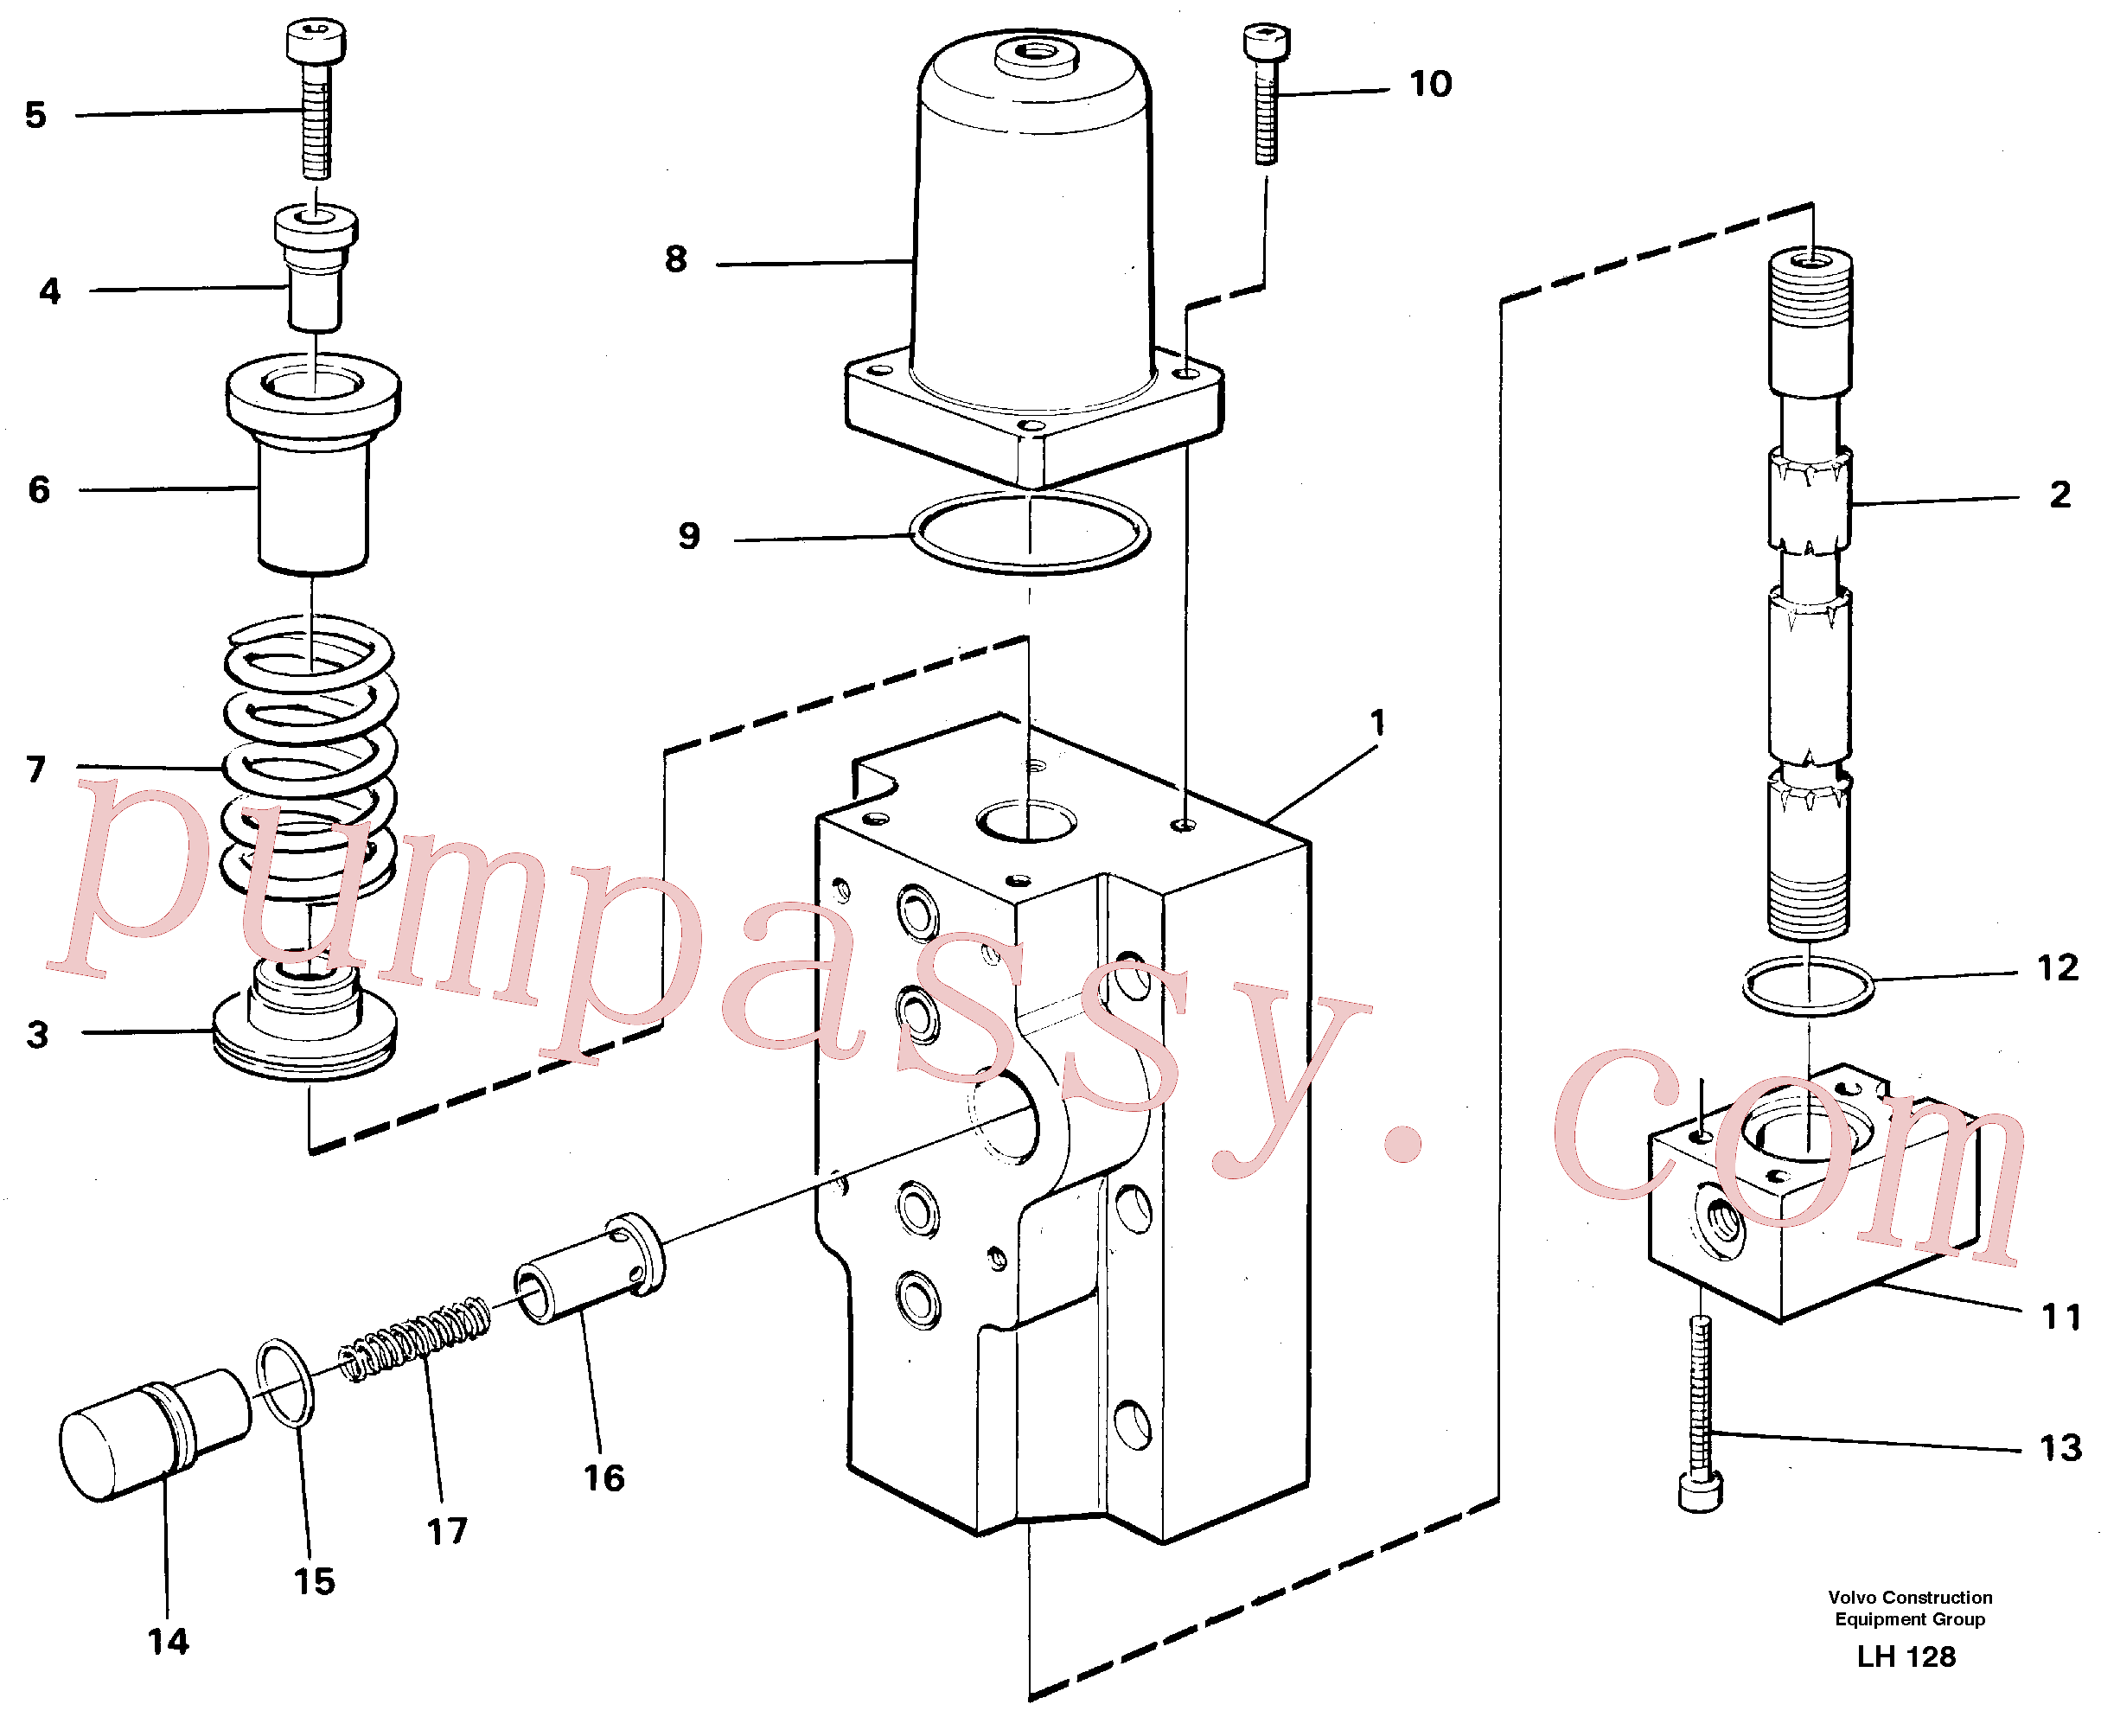 VOE14261818 for Volvo Four-way valves Primary(LH128 assembly)